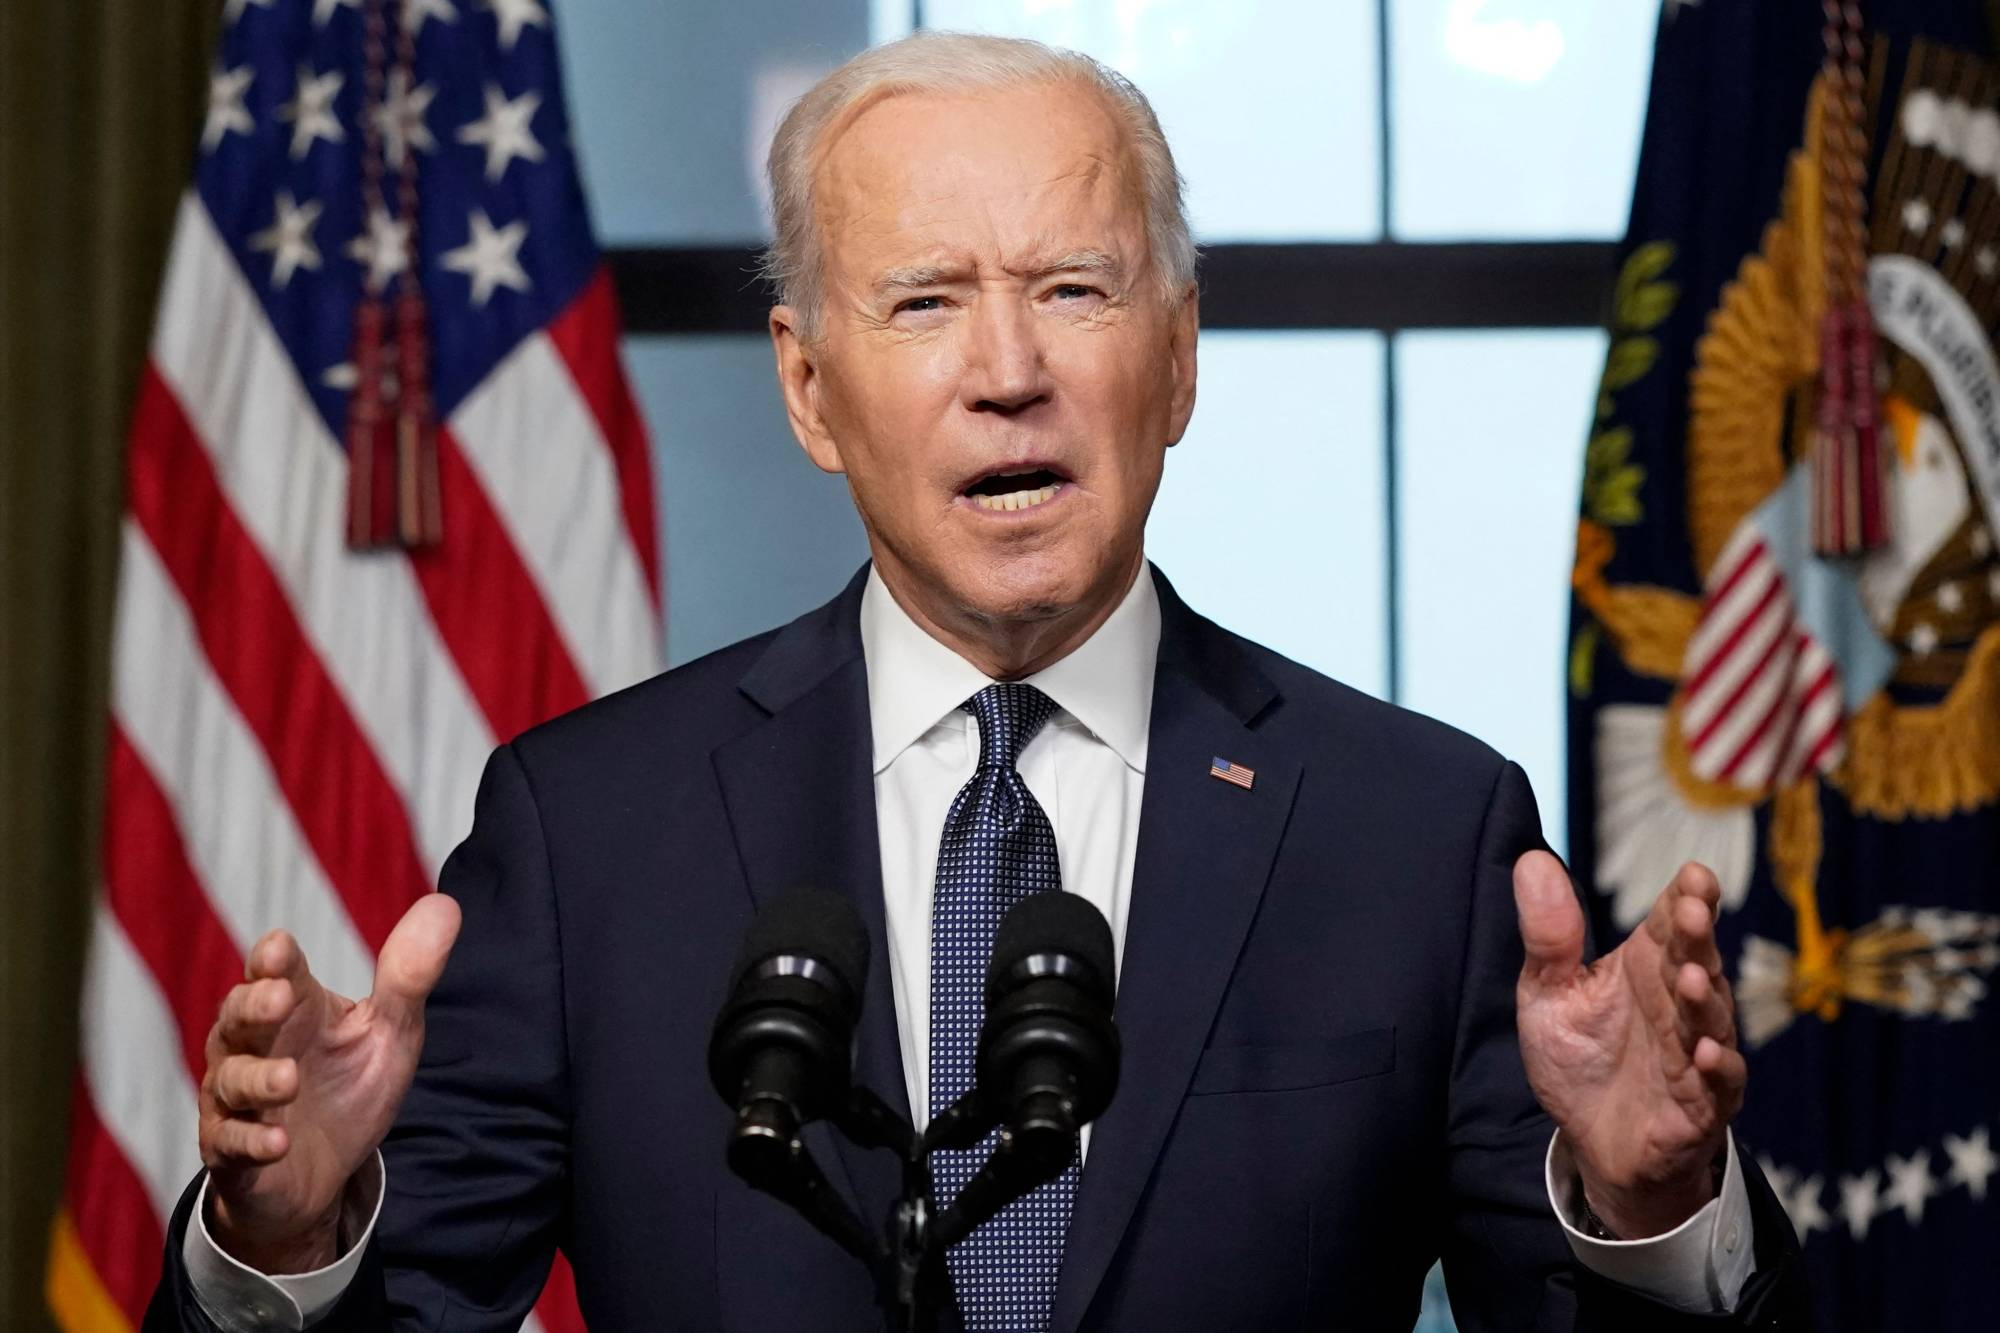 U.S. President Joe Biden speaks from the Treaty Room in the White House on Wednesday about withdrawing the remaining U.S. troops from Afghanistan. | POOL / VIA AFP-JIJI